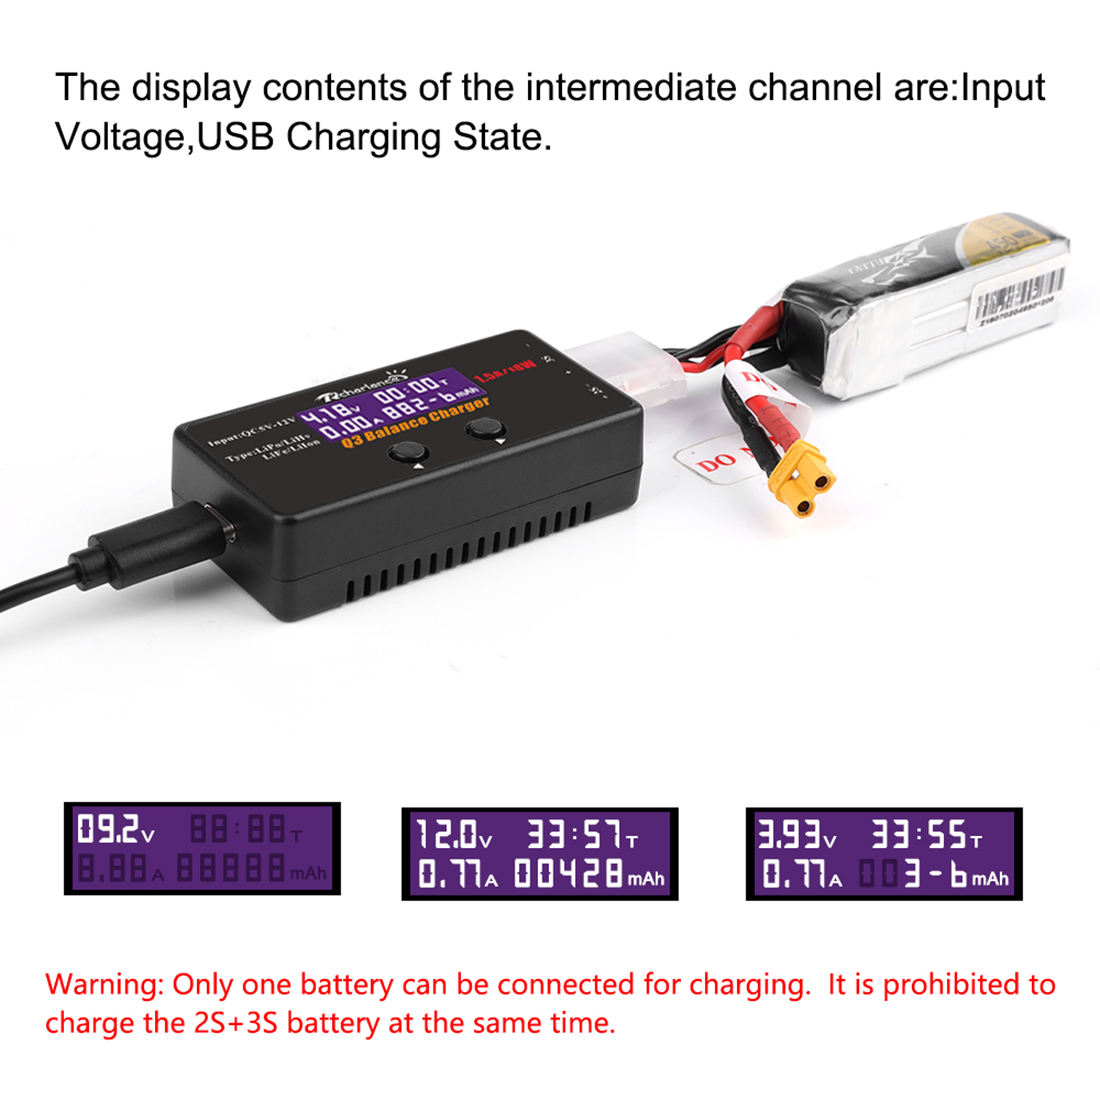 HOBBYINRC 18W Q3 Balance Charger Drone Battrey Charger With Screen For 2-3s LiPo LiHv LiFe Lilon